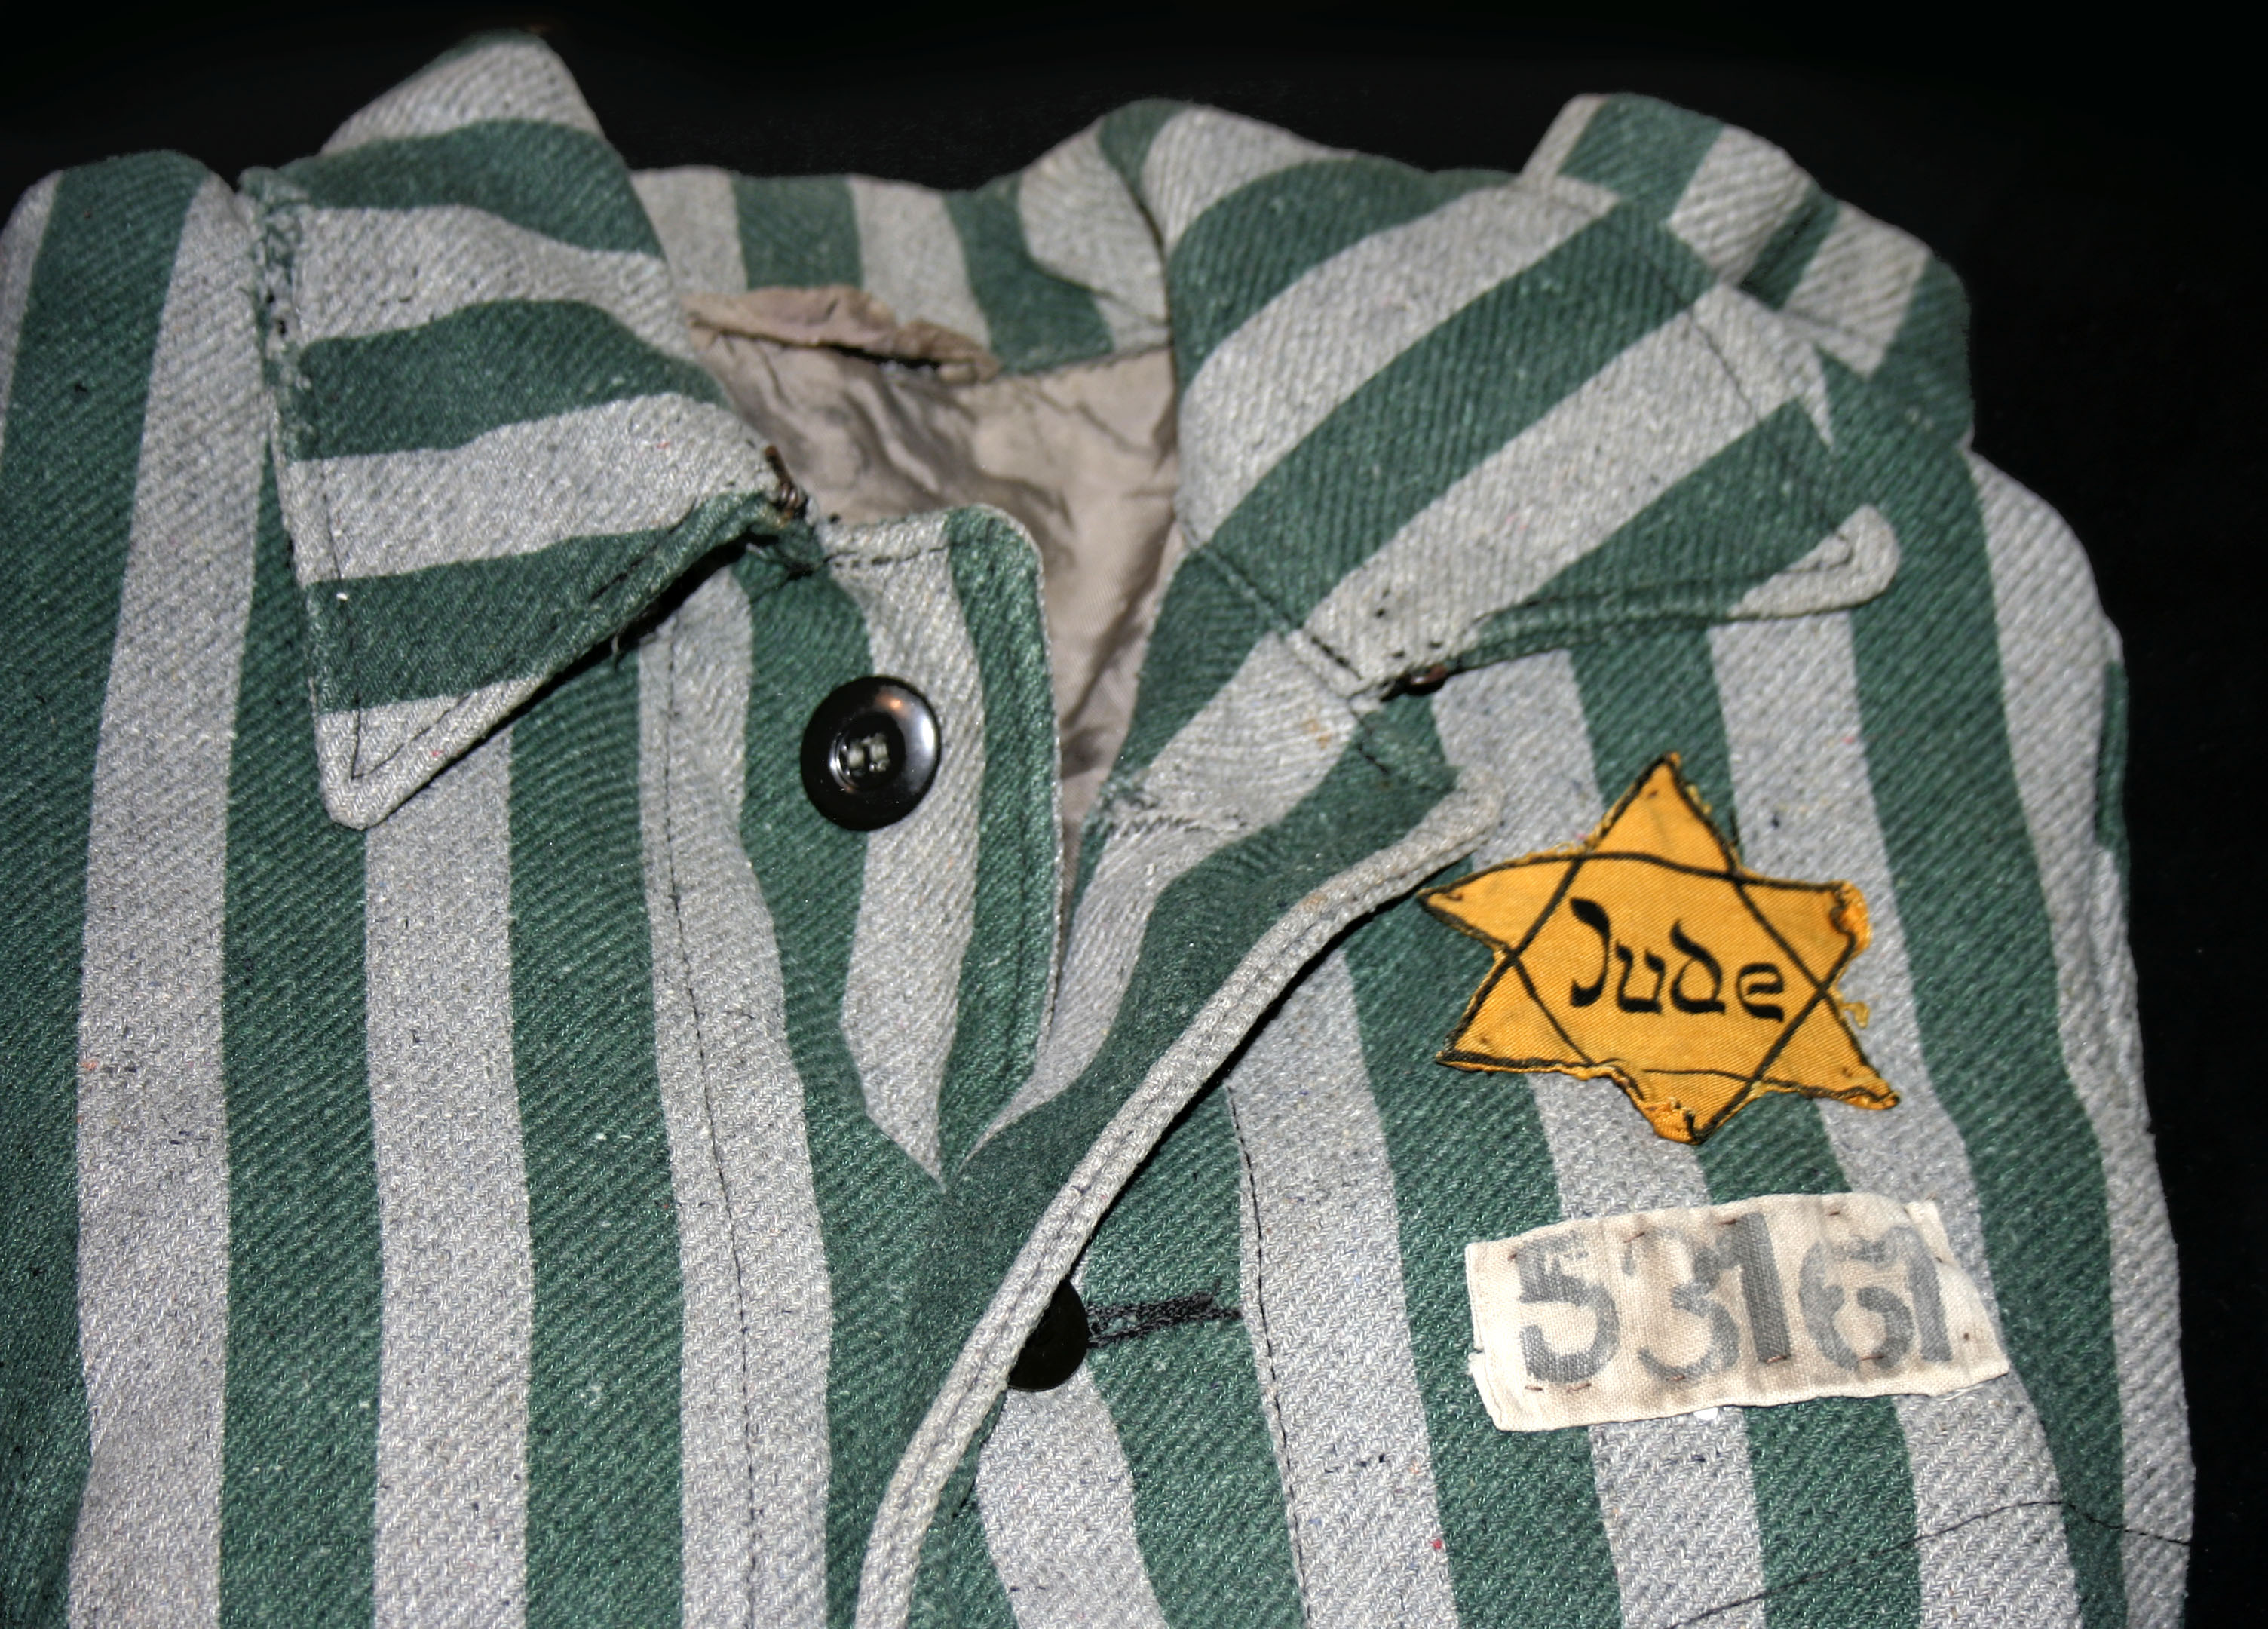 Auschwitz outerwear distinguish yellow Star of David.jpg